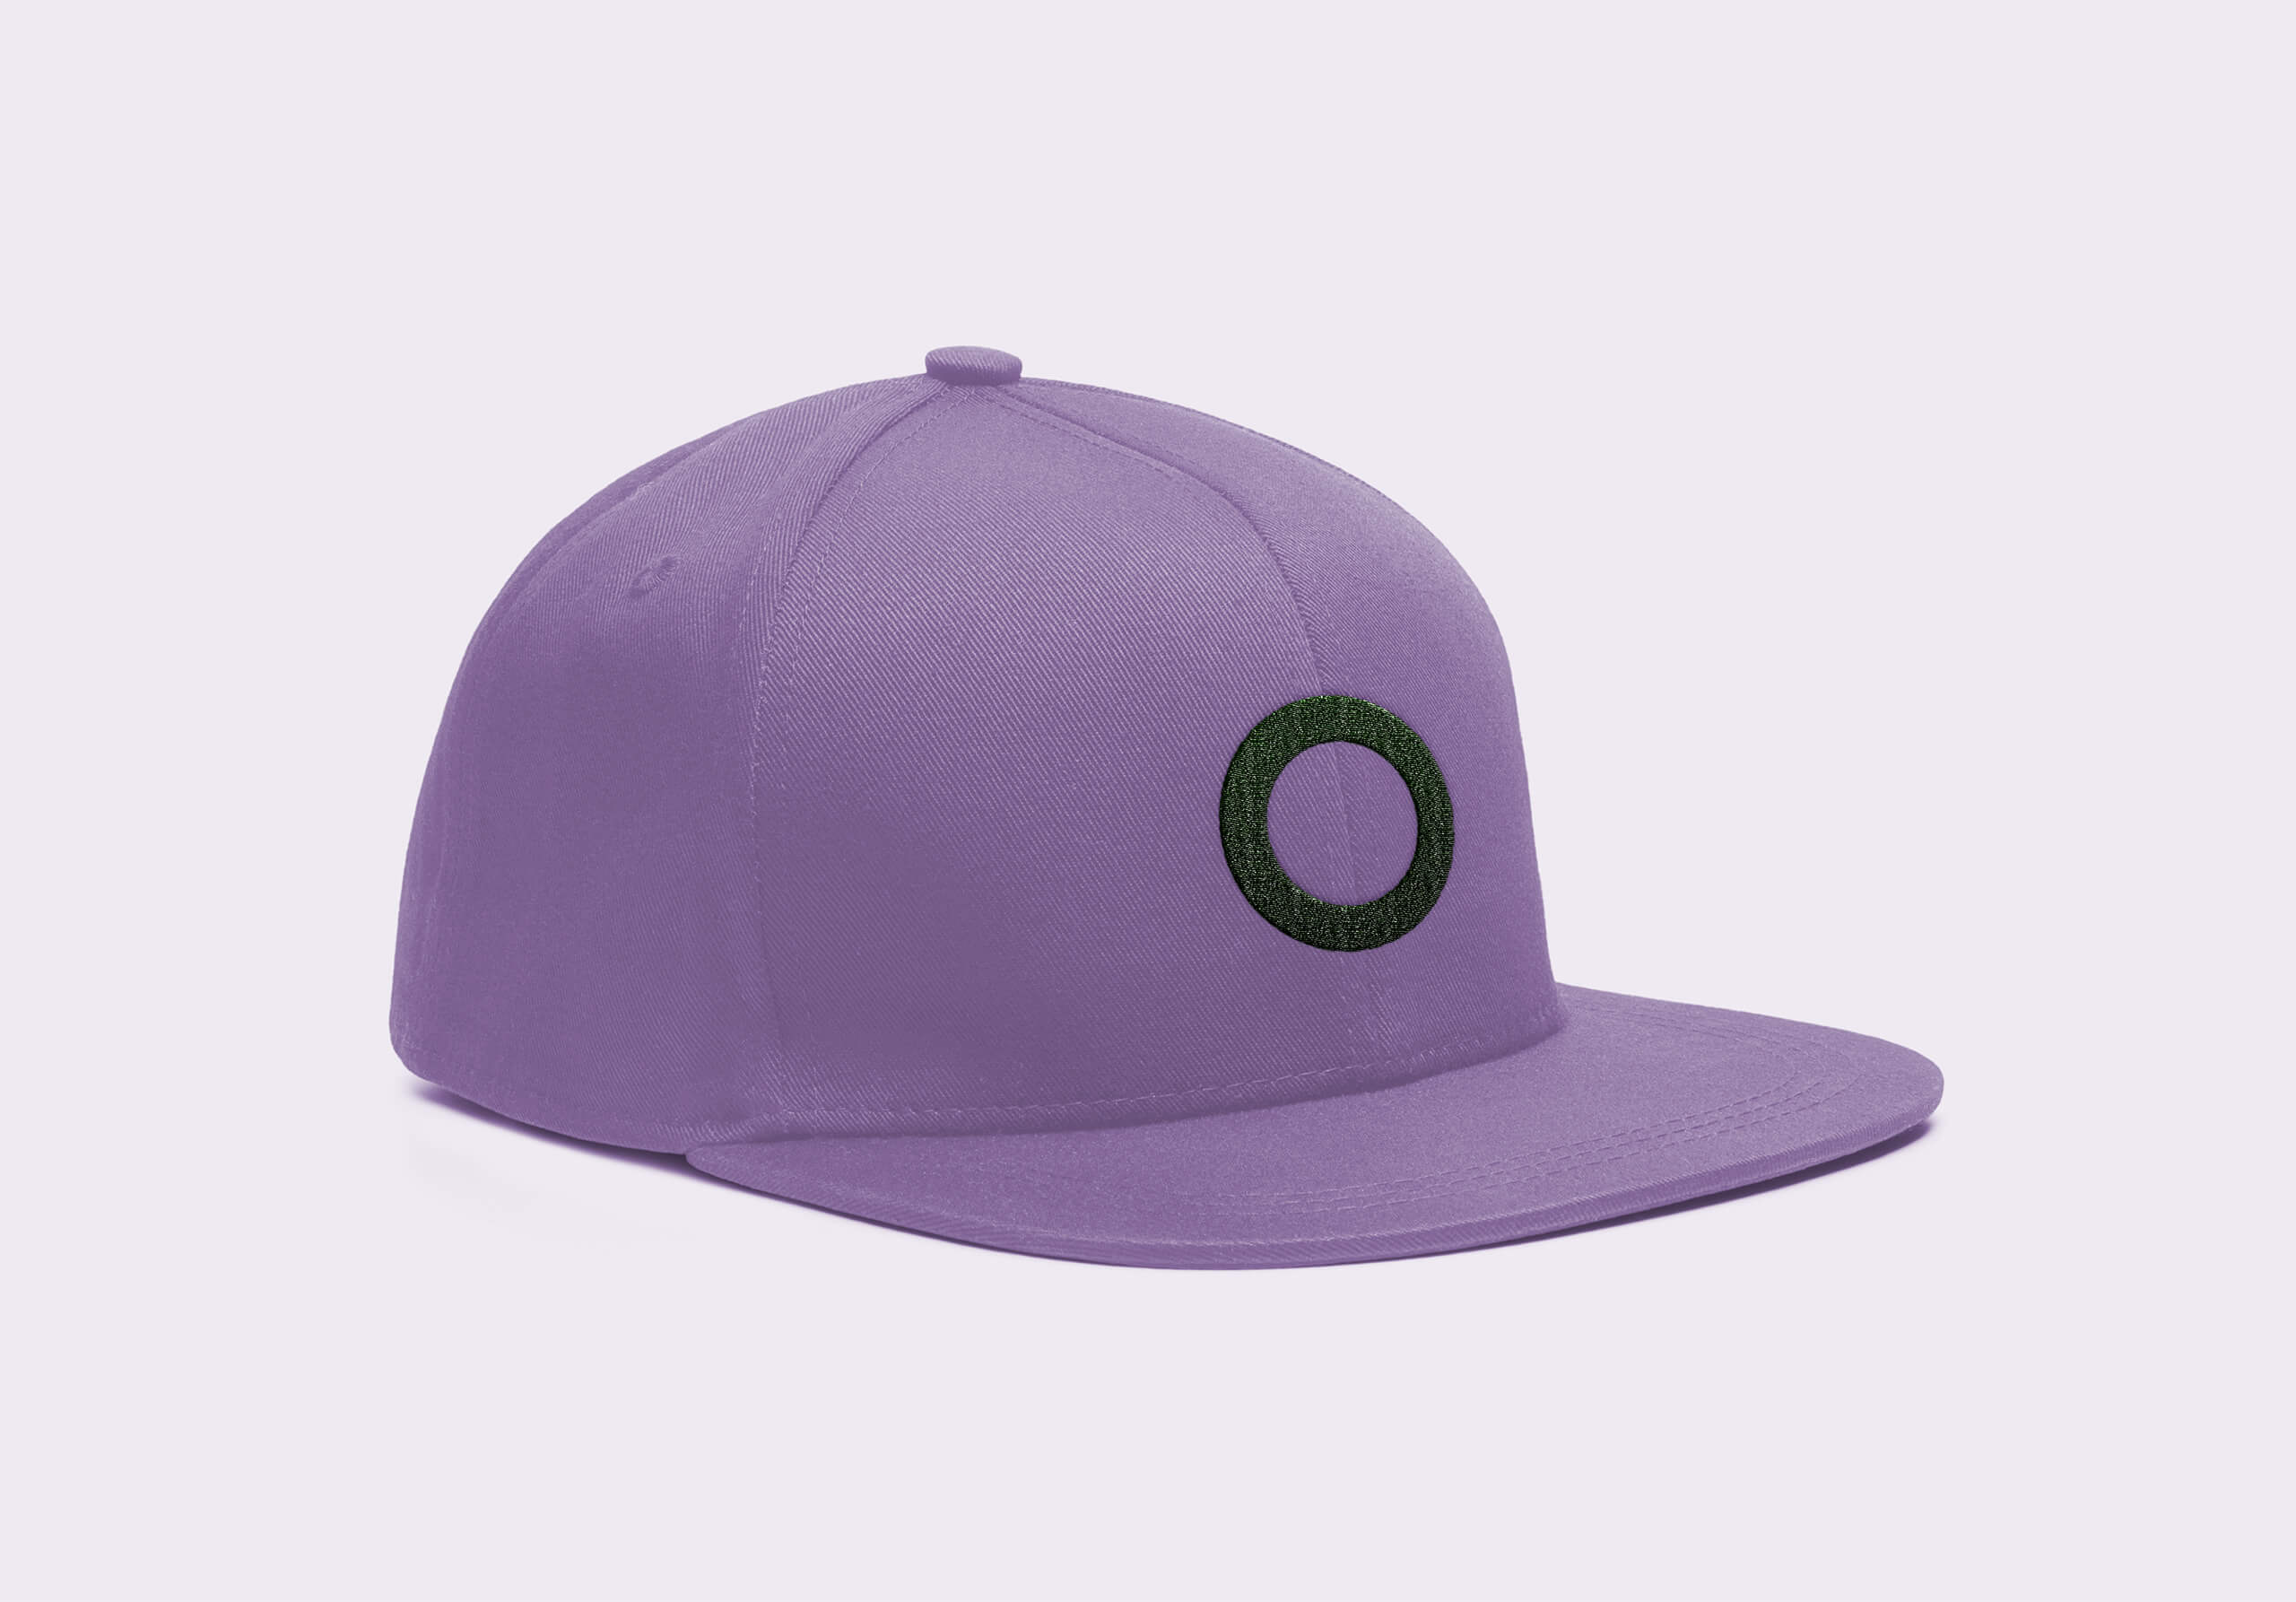 Cap mockup purple 2